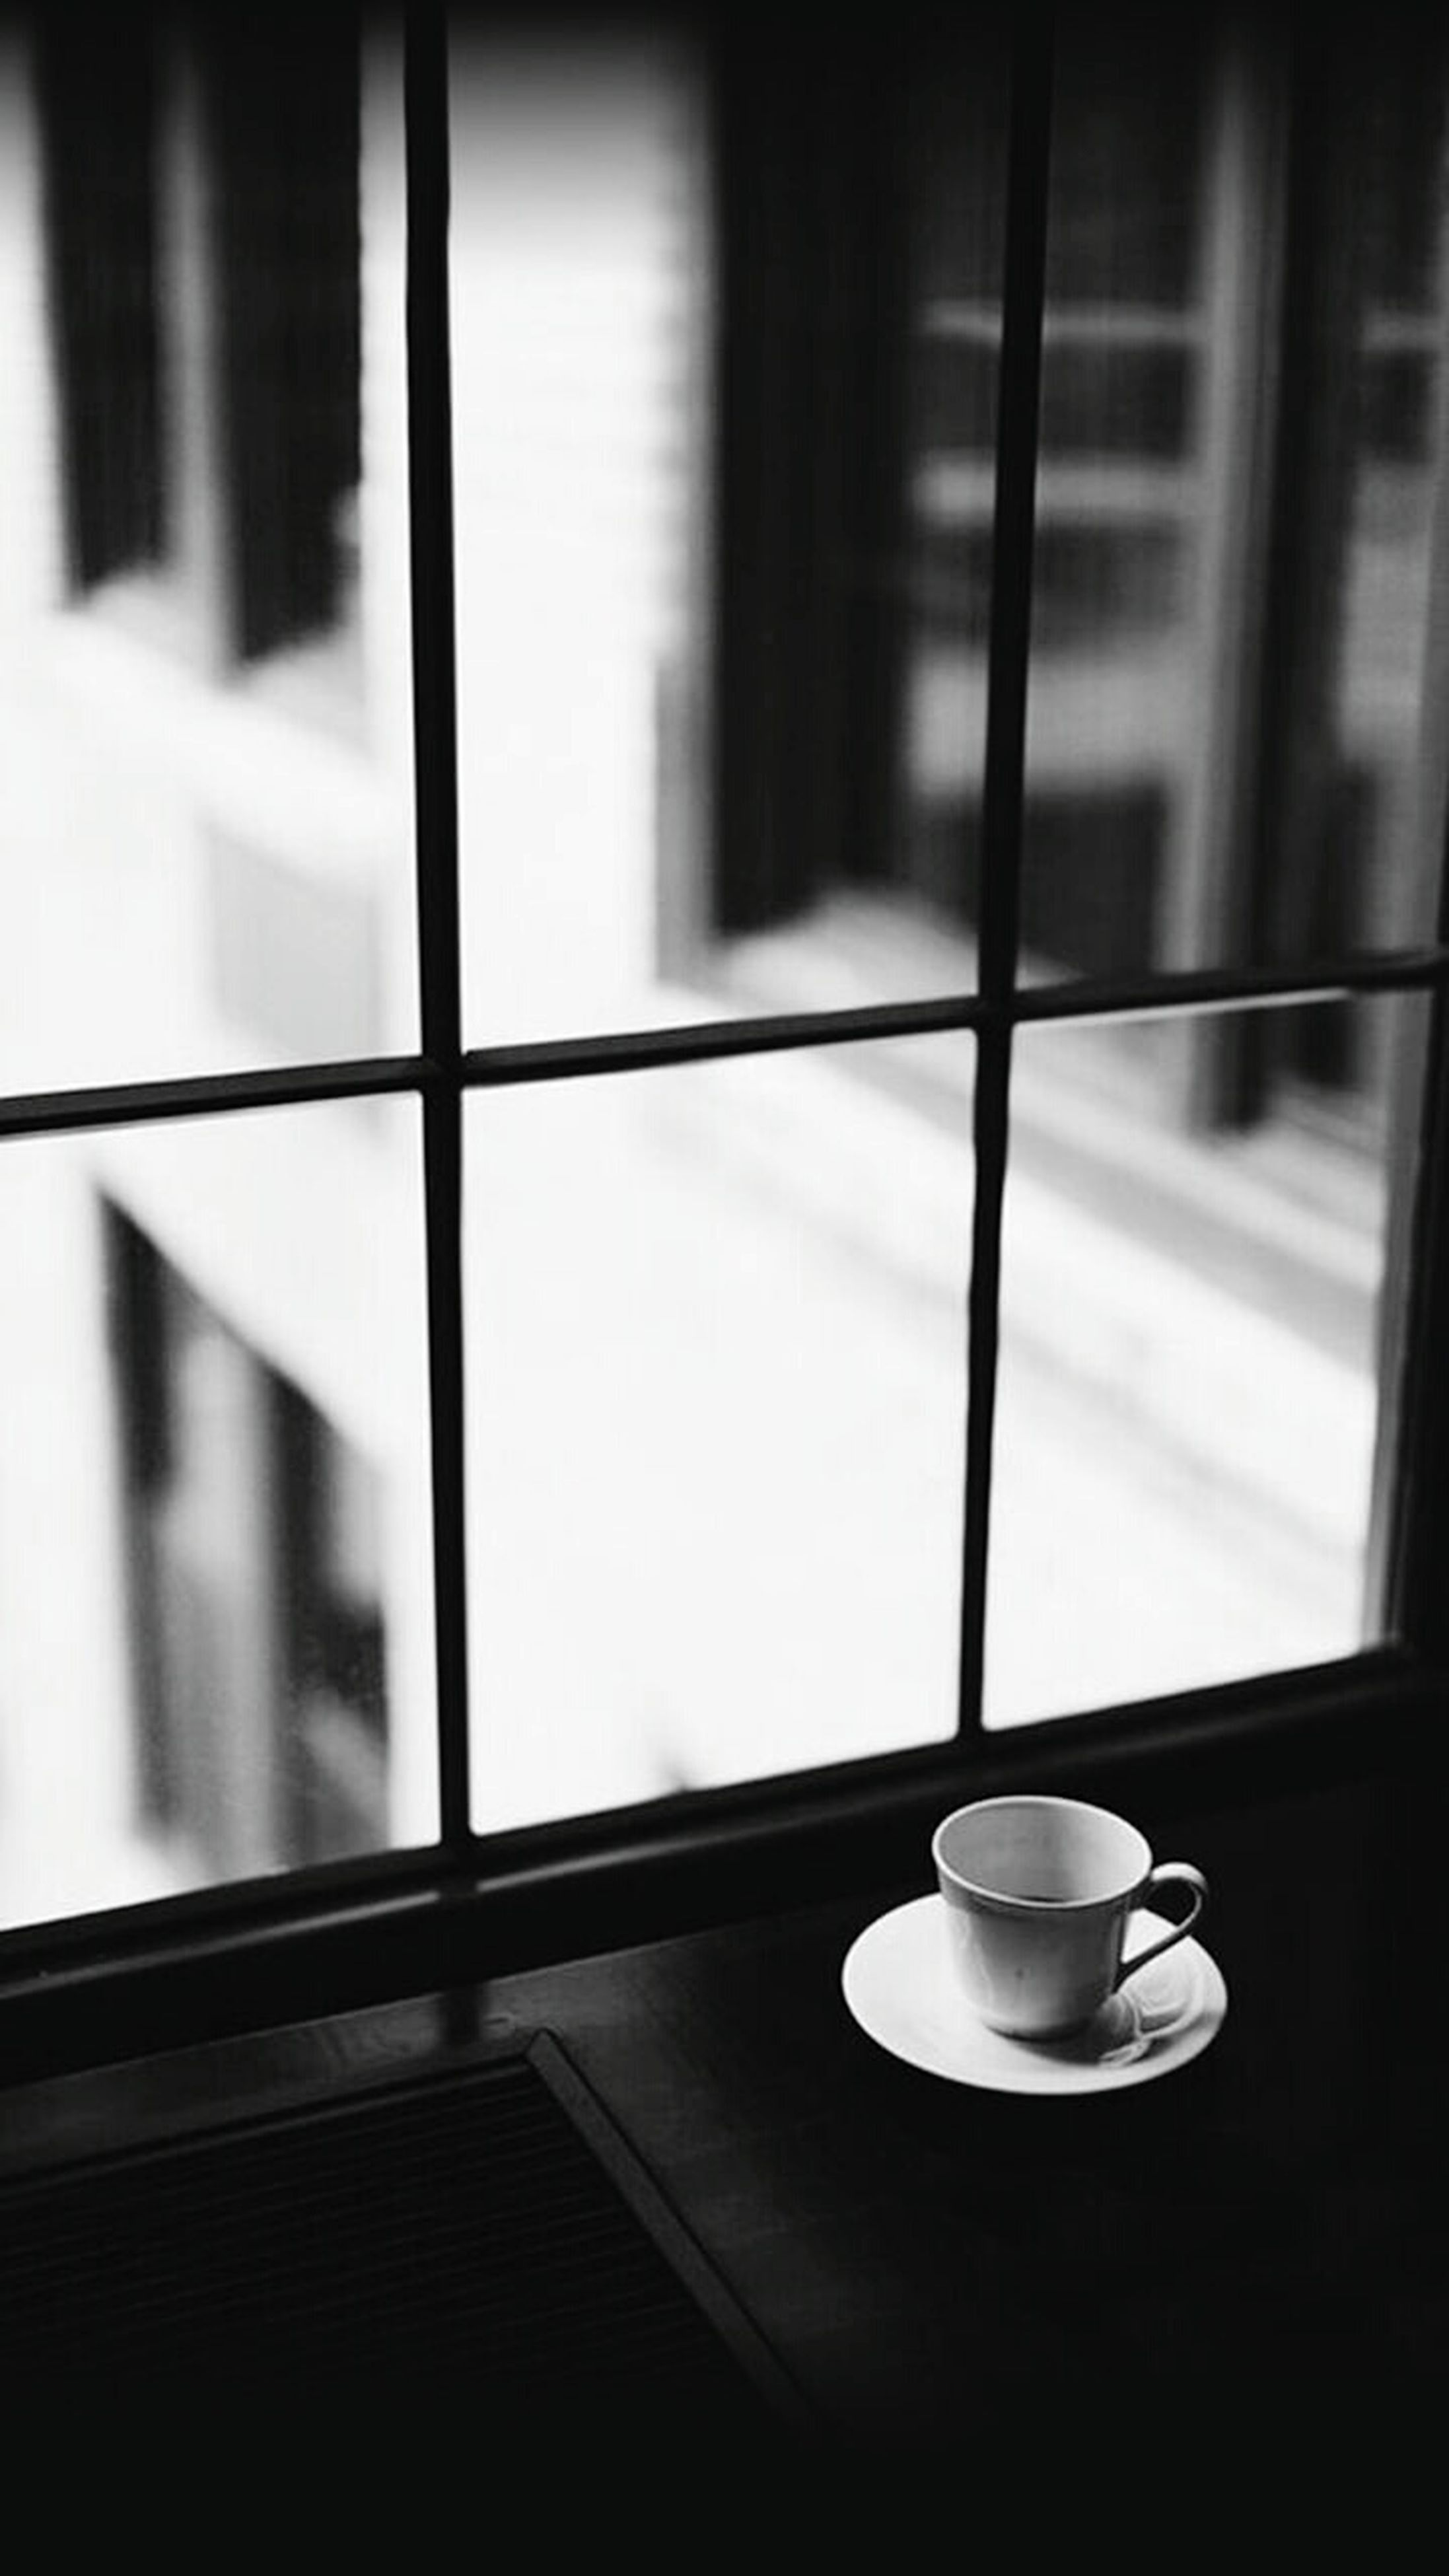 indoors, window, glass - material, table, transparent, home interior, glass, drink, food and drink, architecture, built structure, close-up, window sill, reflection, refreshment, focus on foreground, still life, day, no people, coffee cup